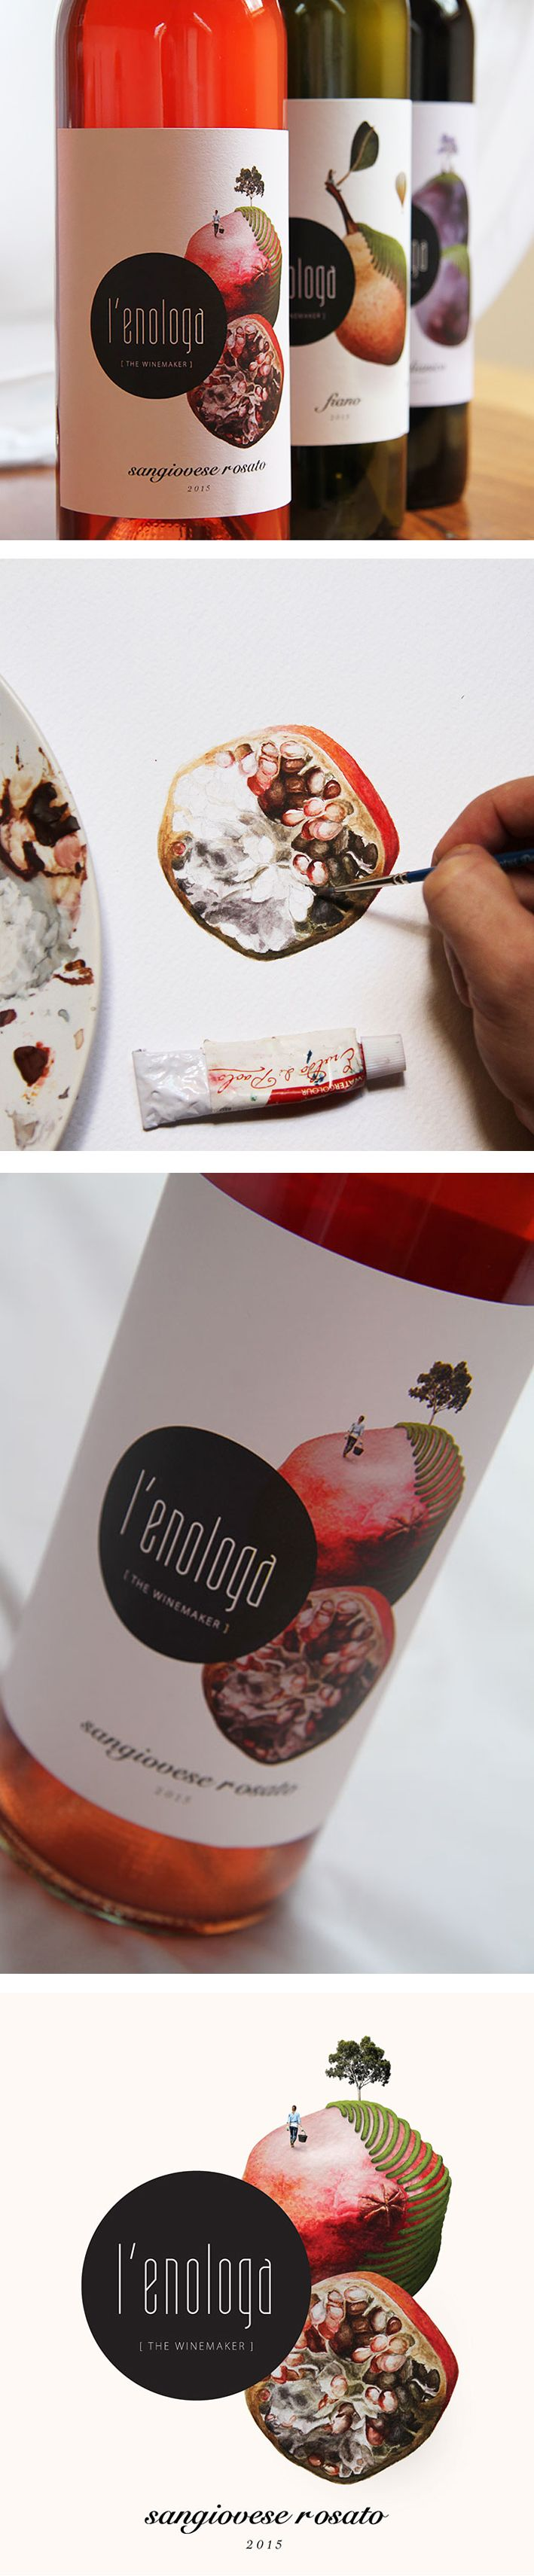 Colourful Wine Label Collection. Client: L'enologa, Mildura, VIC Australia. The artworks are hand painted water colours with some mixed media details. The labels depict the journey of L'enologa, Italian for 'the winemaker' swept away in her own creation where flavour is king. I hope you like. Designed by Beetle Creative.